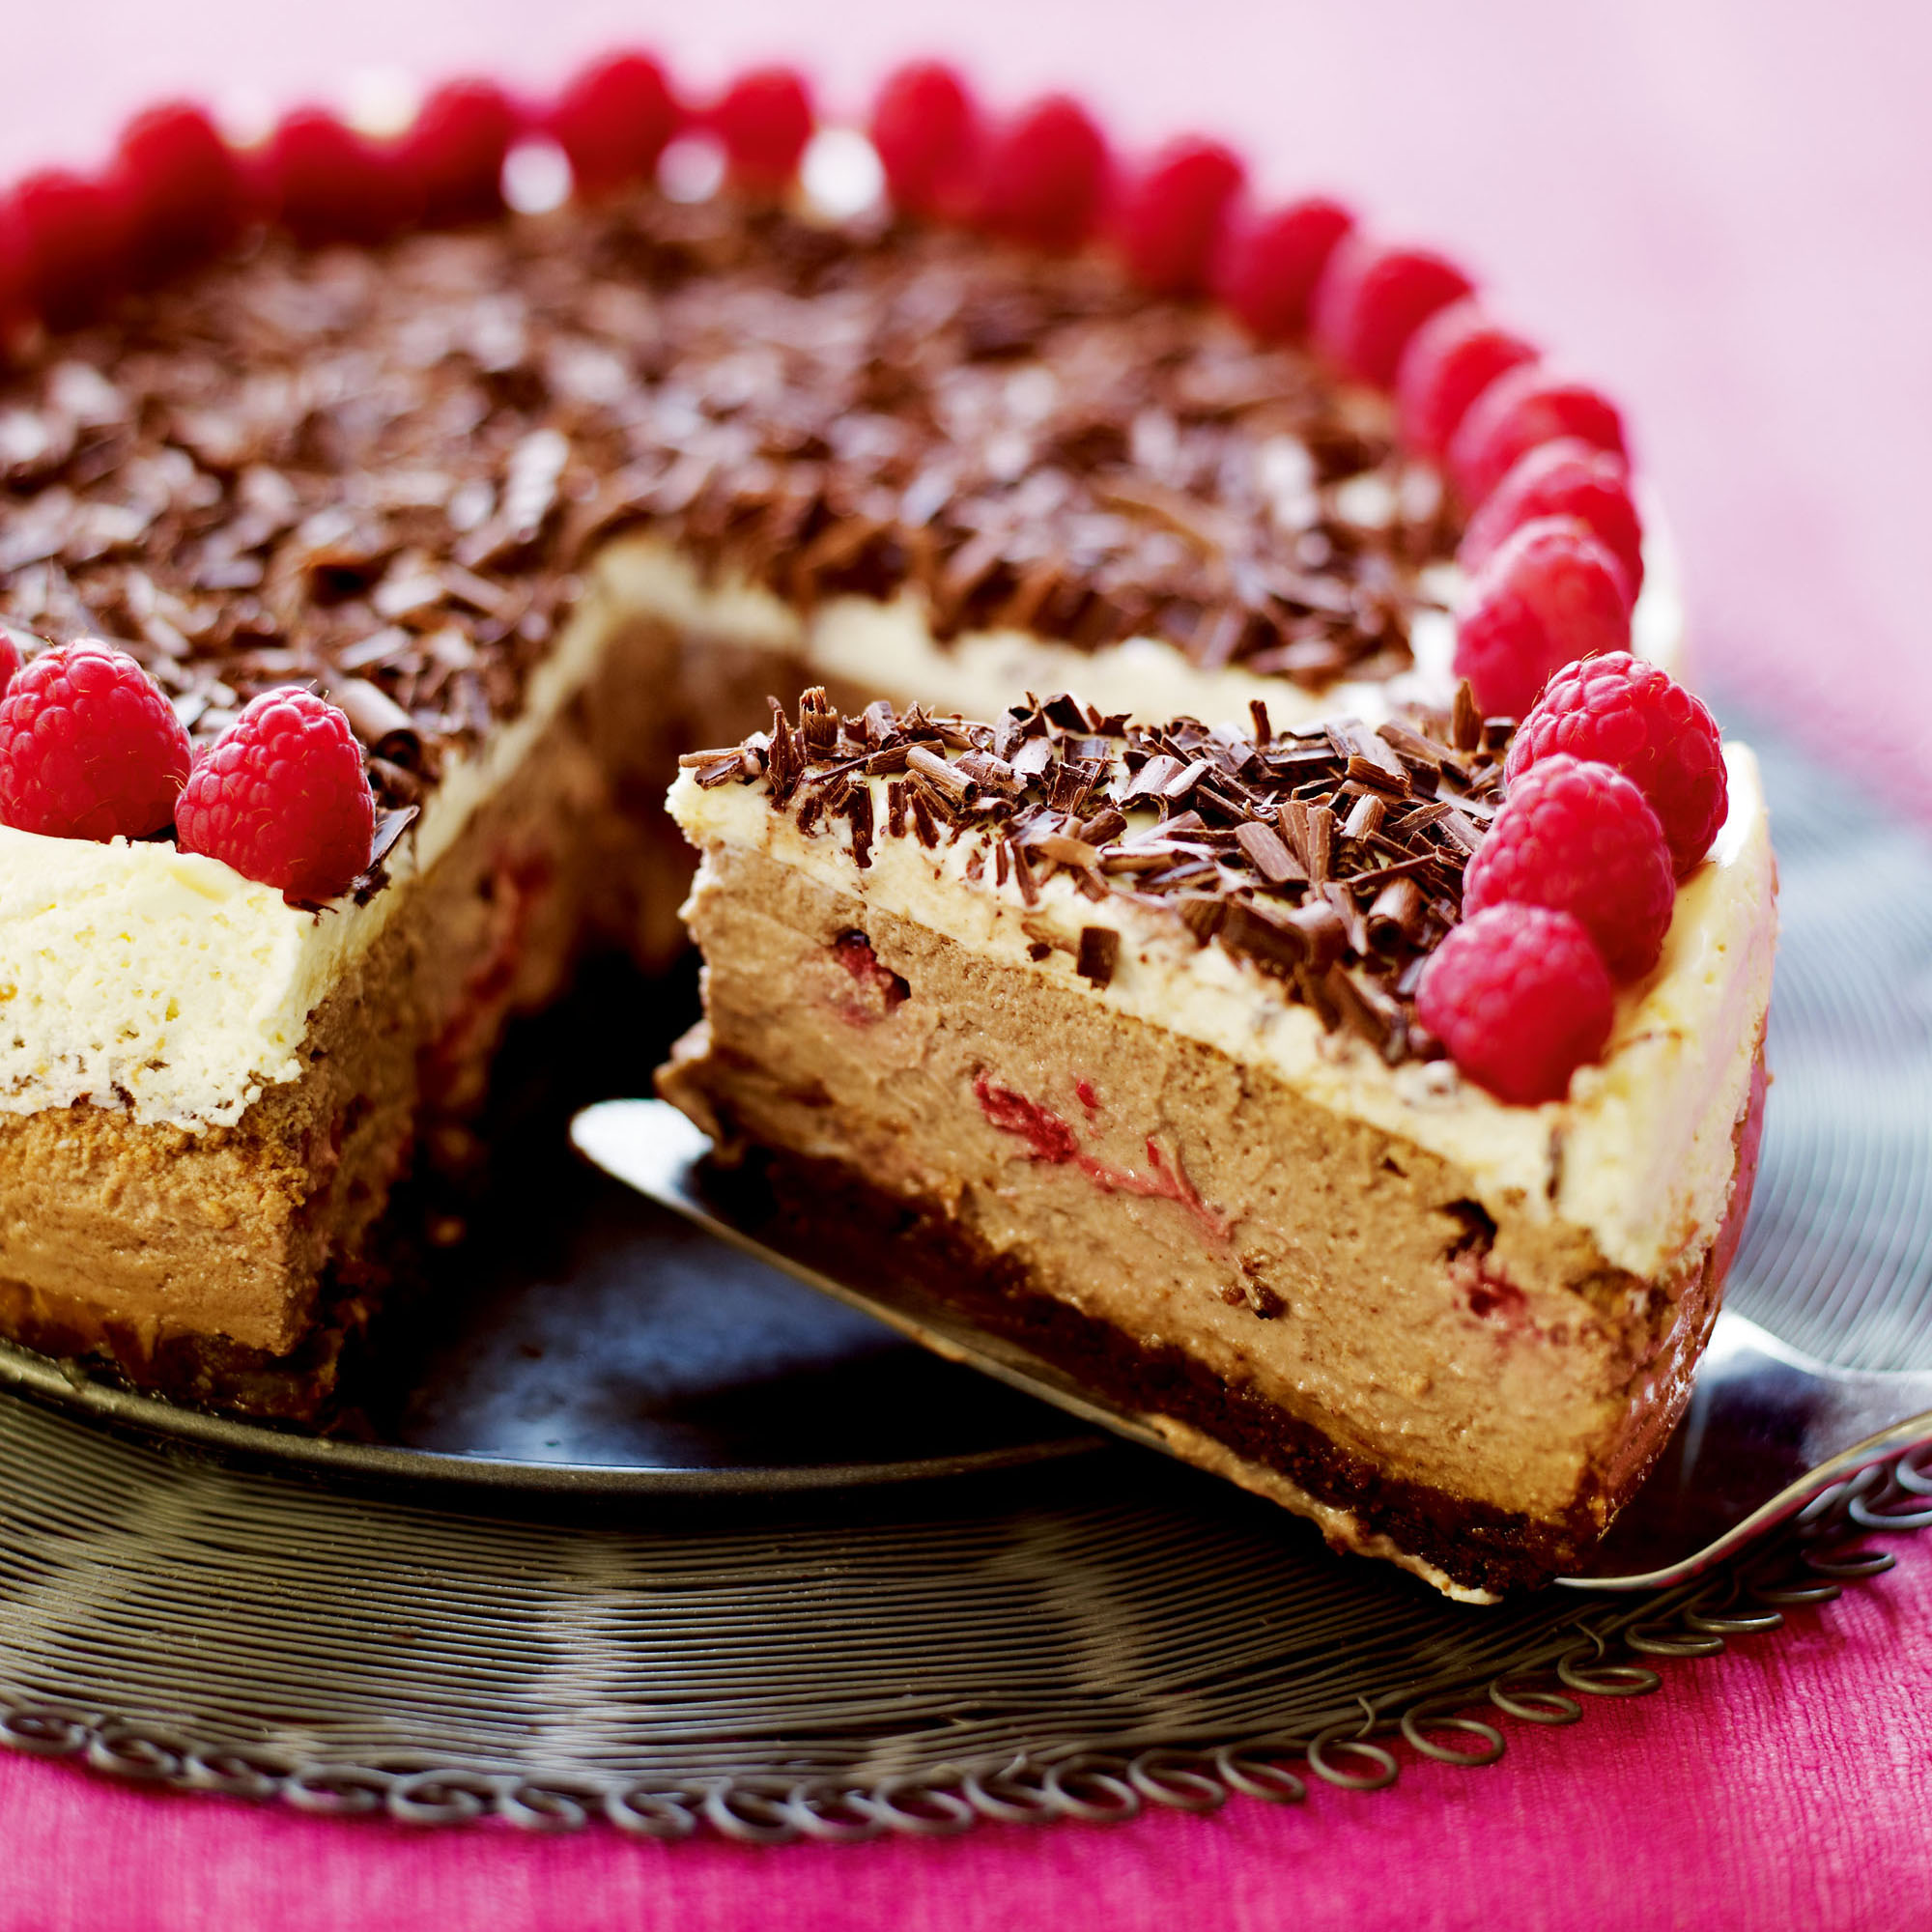 American Style Baked Chocolate And Raspberry Cheesecake Dessert